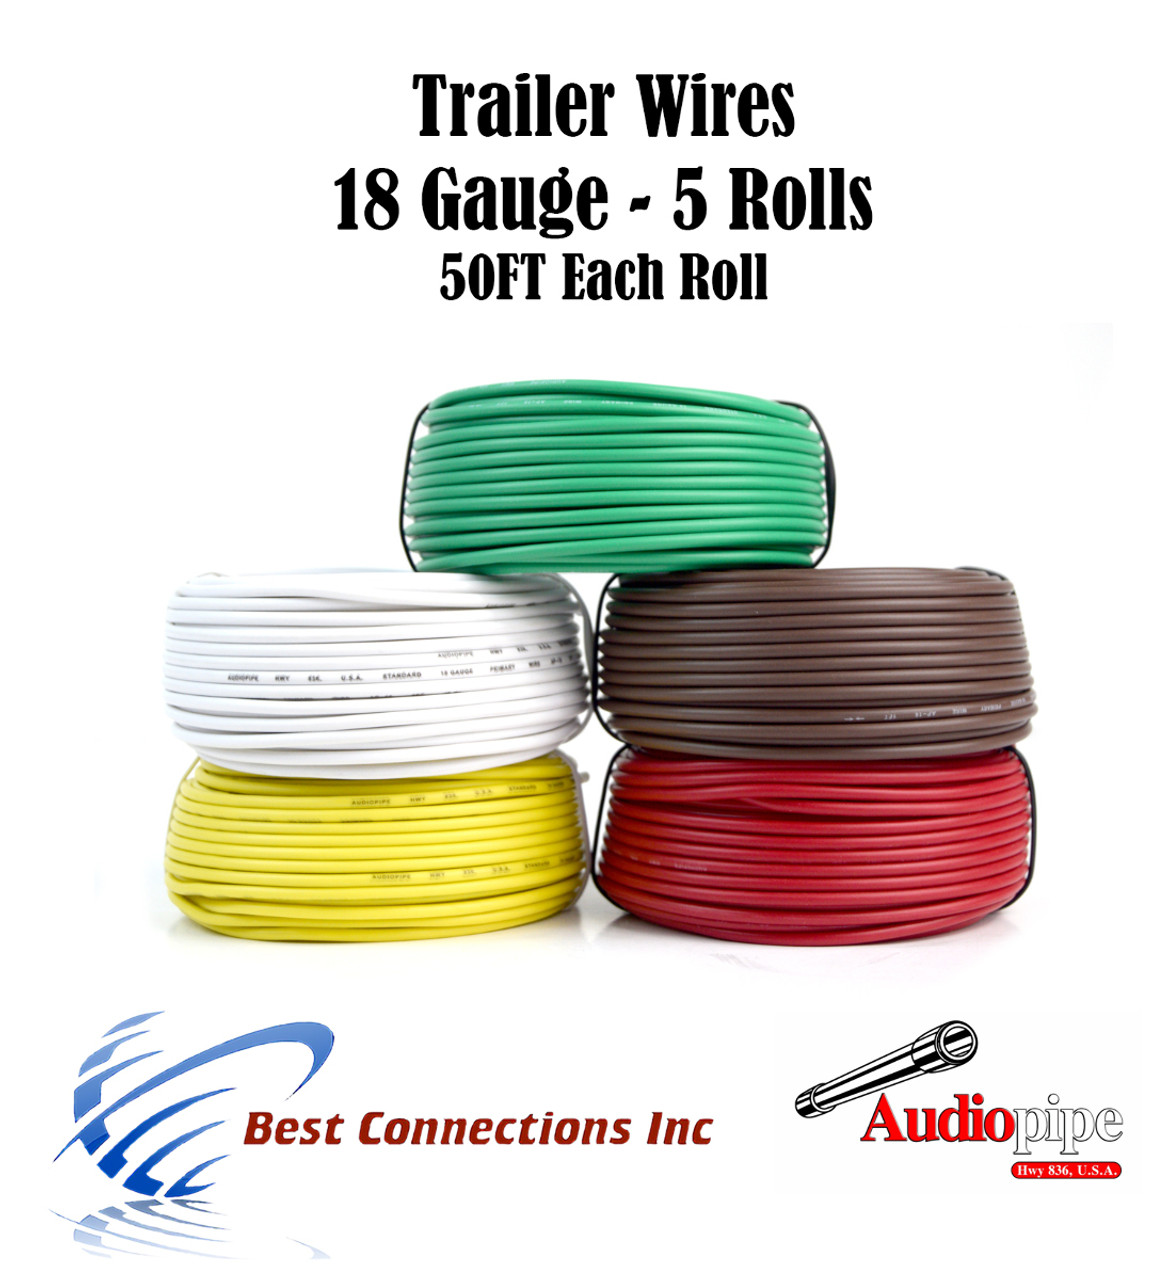 5 Way Trailer Wire Light Cable For Harness Led 50ft Each Roll 18 Copper Gauge Colors